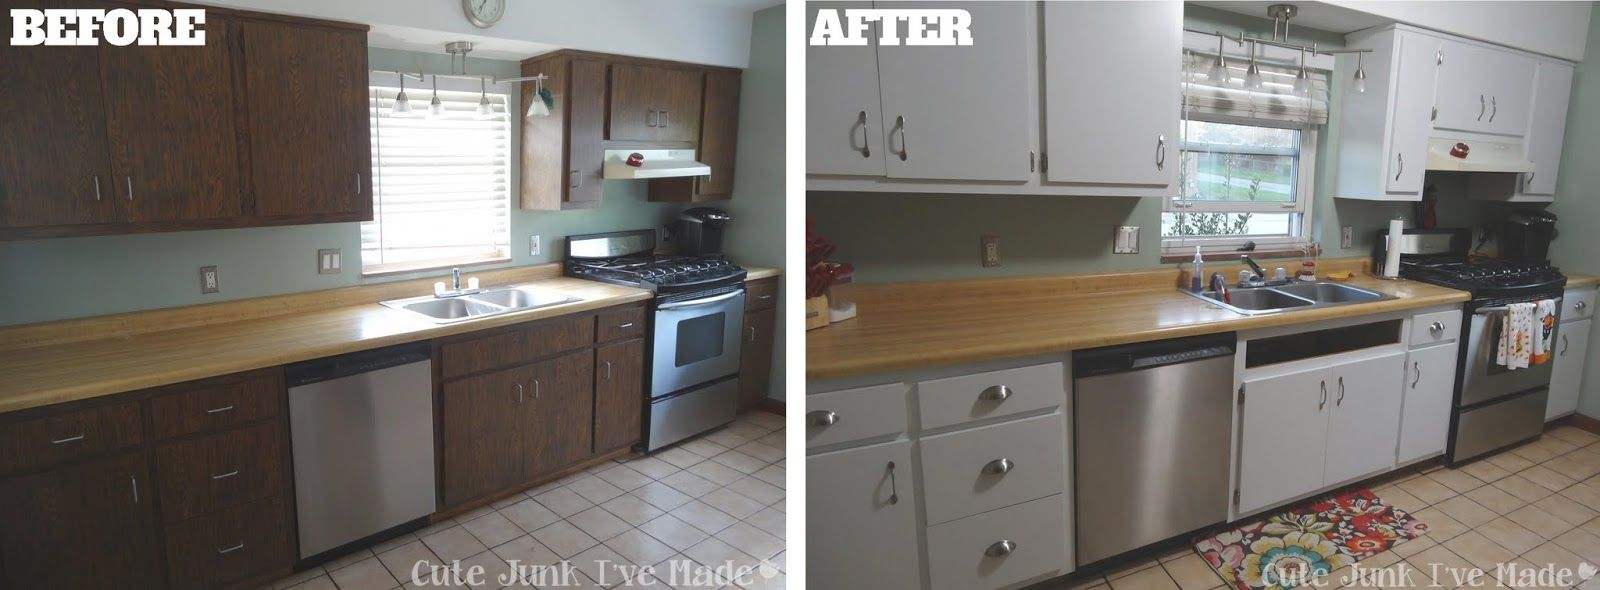 How To Paint Laminate Cabinets Before After Need To Finally Do Something Ab Laminate Kitchen Cabinets Laminate Cabinets Painting Laminate Kitchen Cabinets